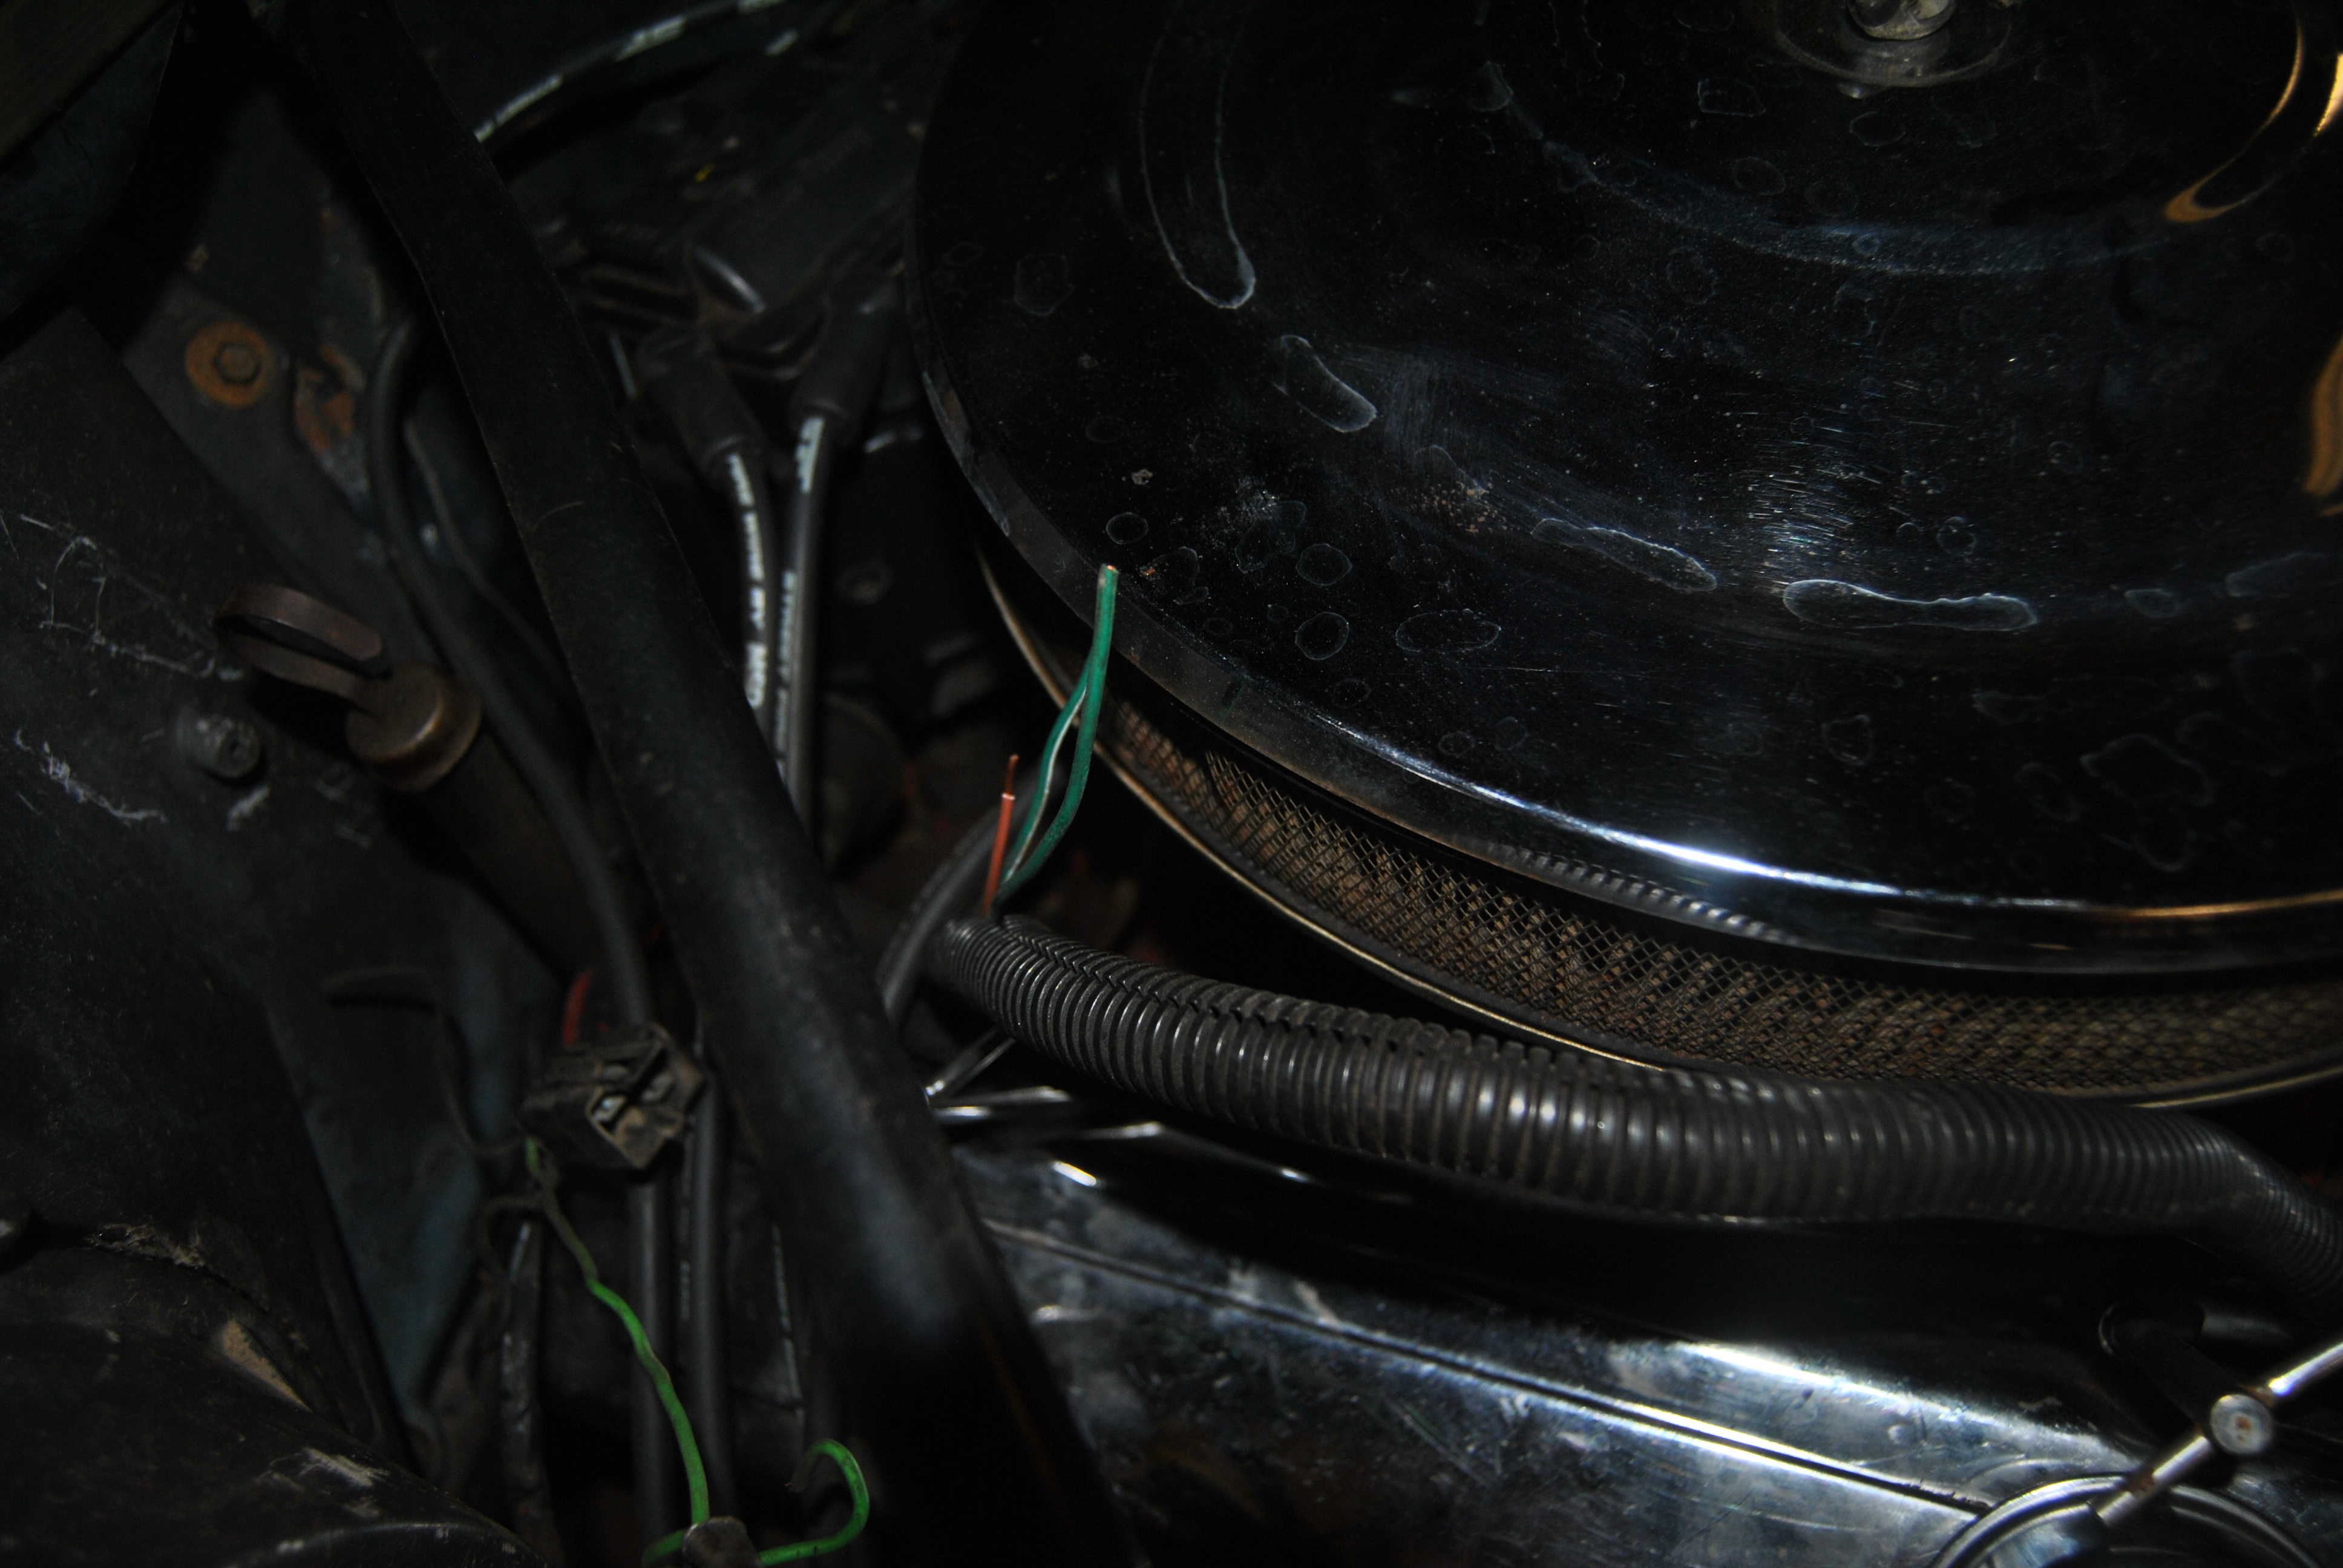 Need Help W Alternator Wiring Gbodyforum 78 88 General Motors Oldsmobile Dsc 8741